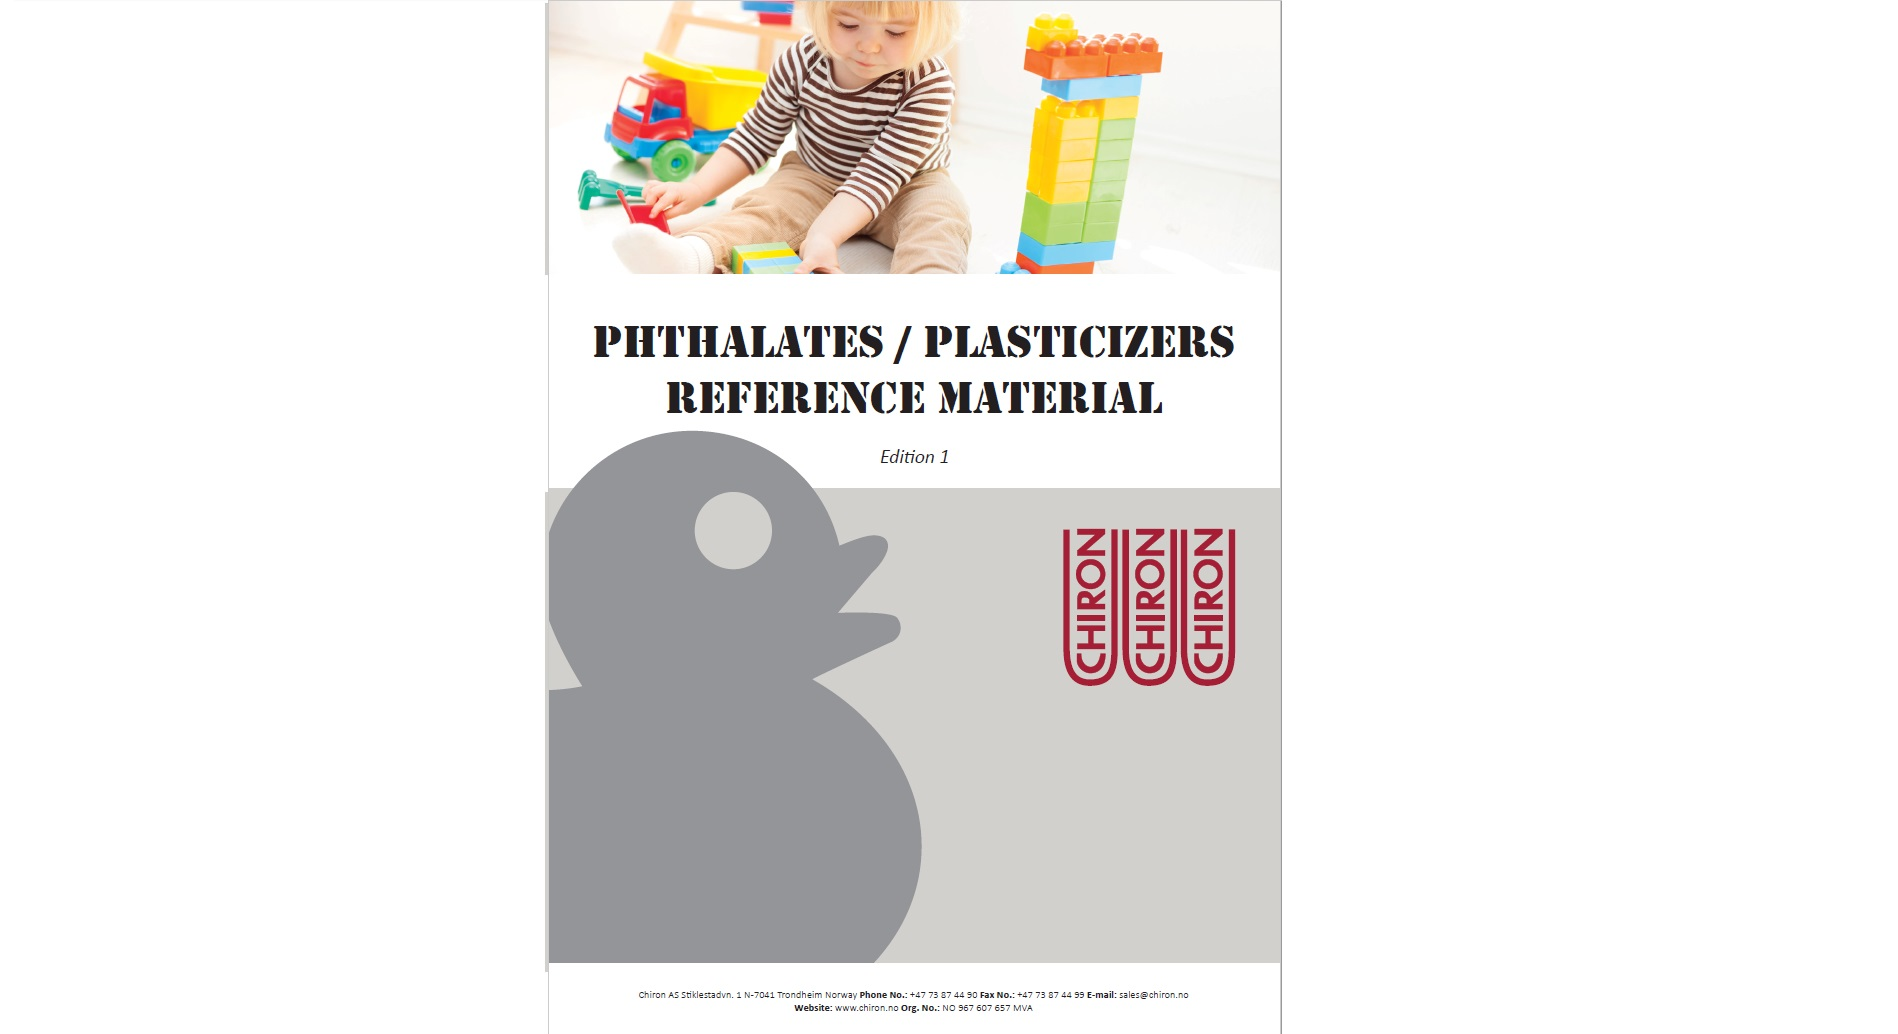 Phthalates/Plasticizers, Edition 1